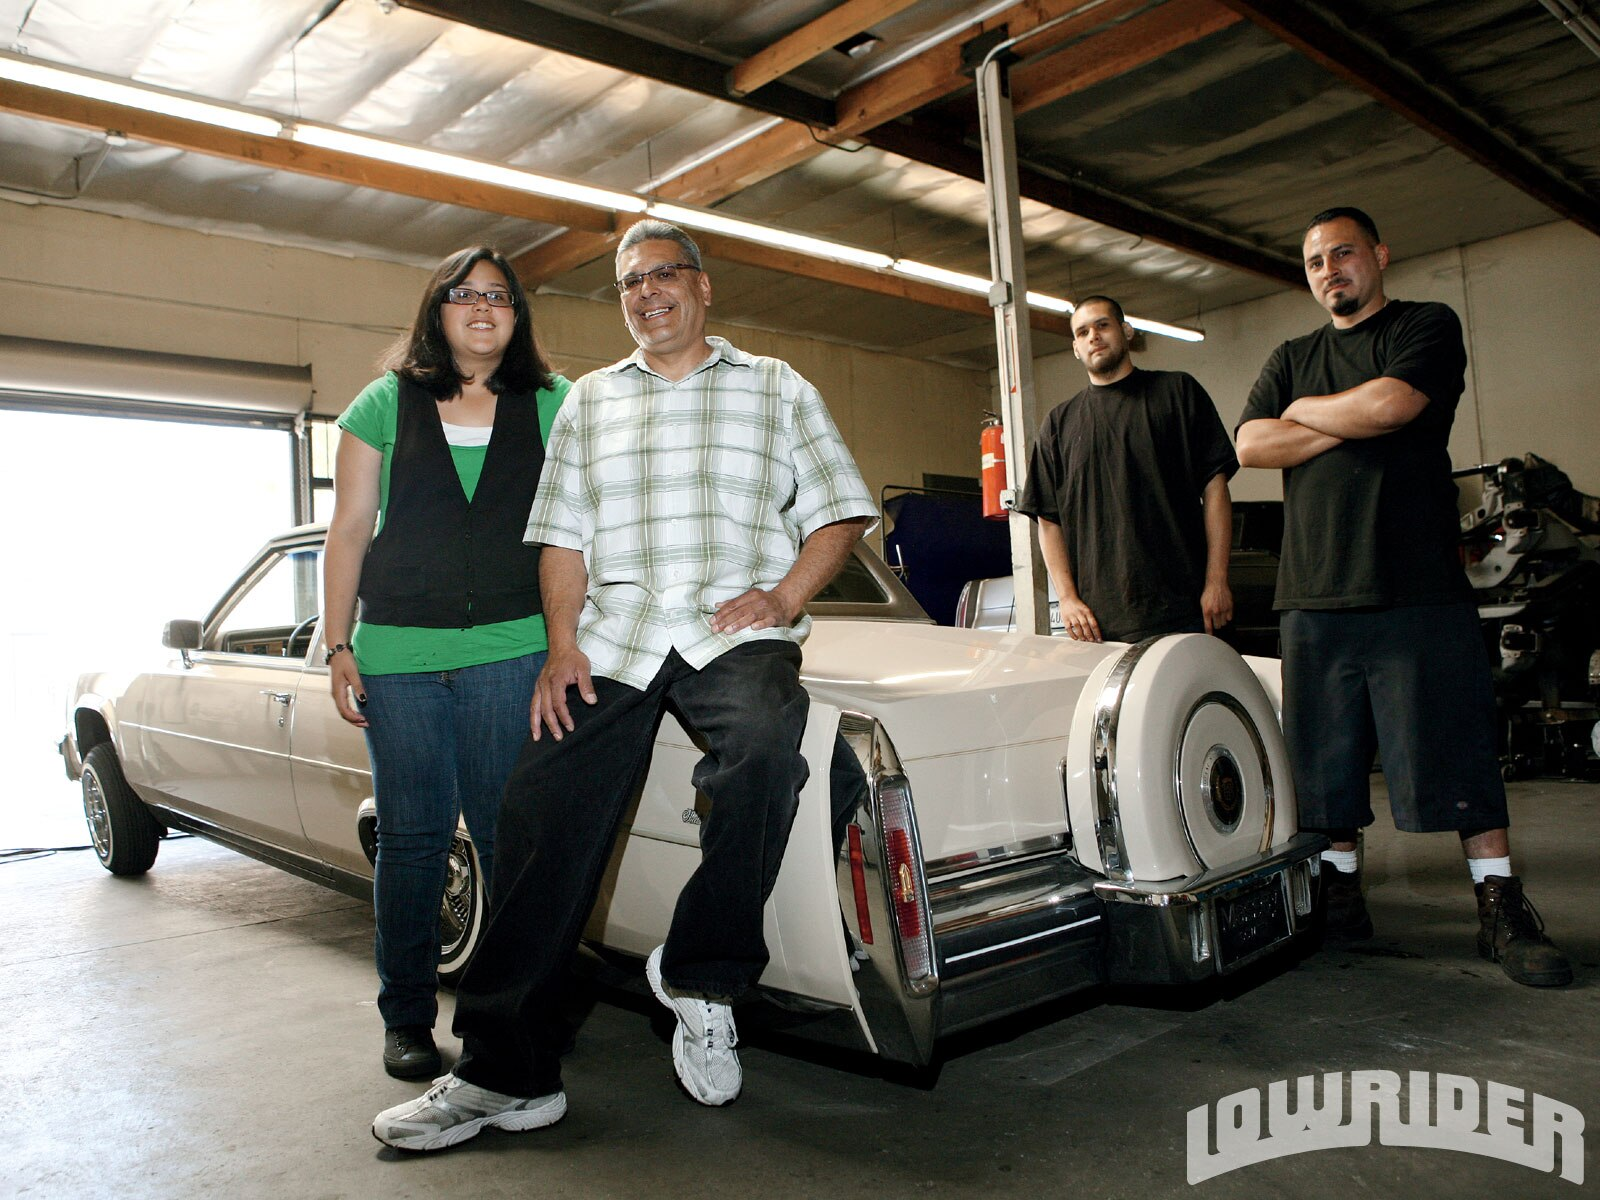 1009-lrmp-09-z-lowrider-lifetime-achievement-award-lowrider-enthusiasts2